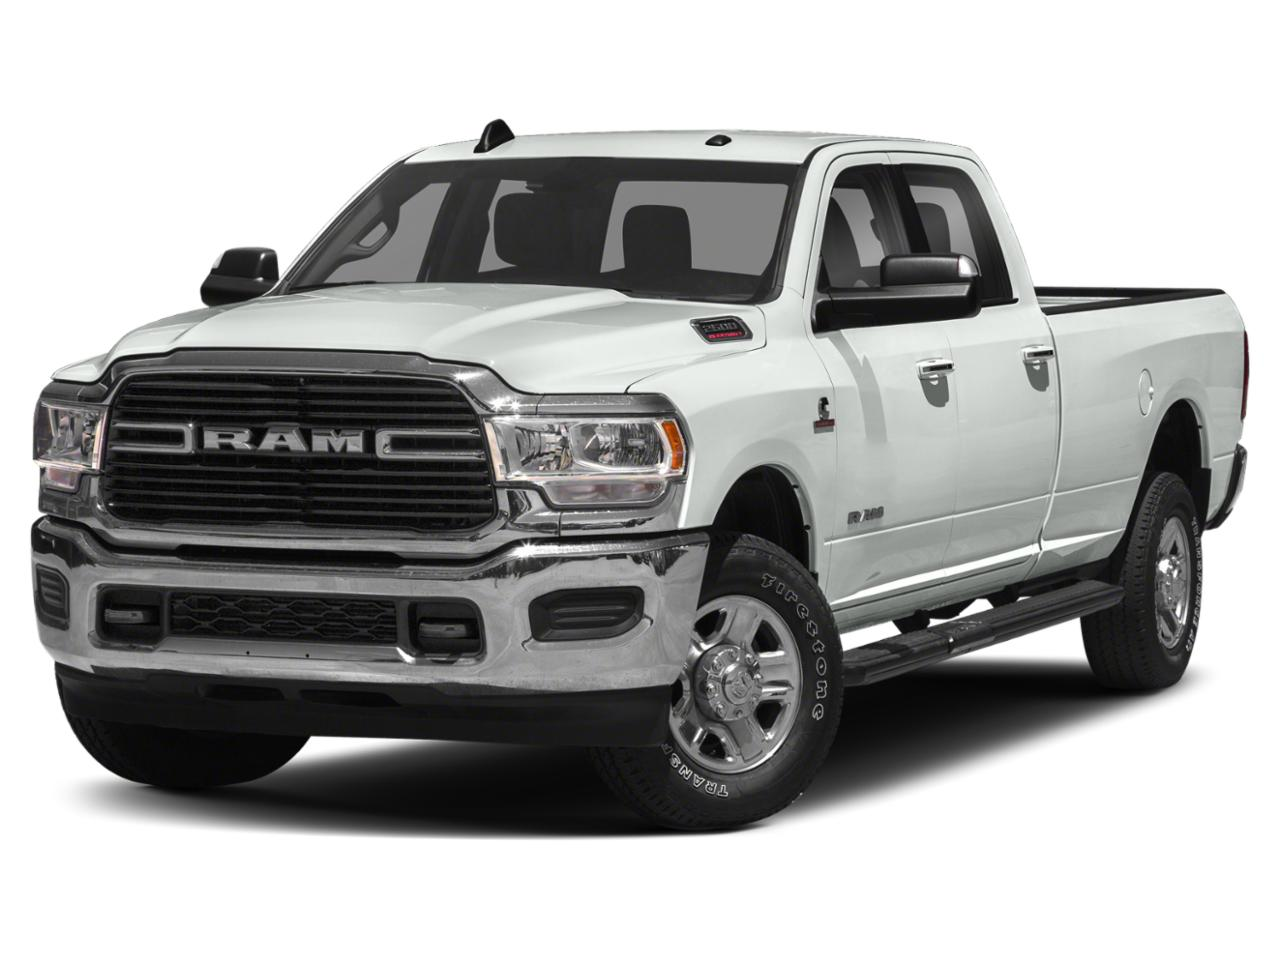 2020 Ram 2500 Vehicle Photo in Riverside, CA 92504